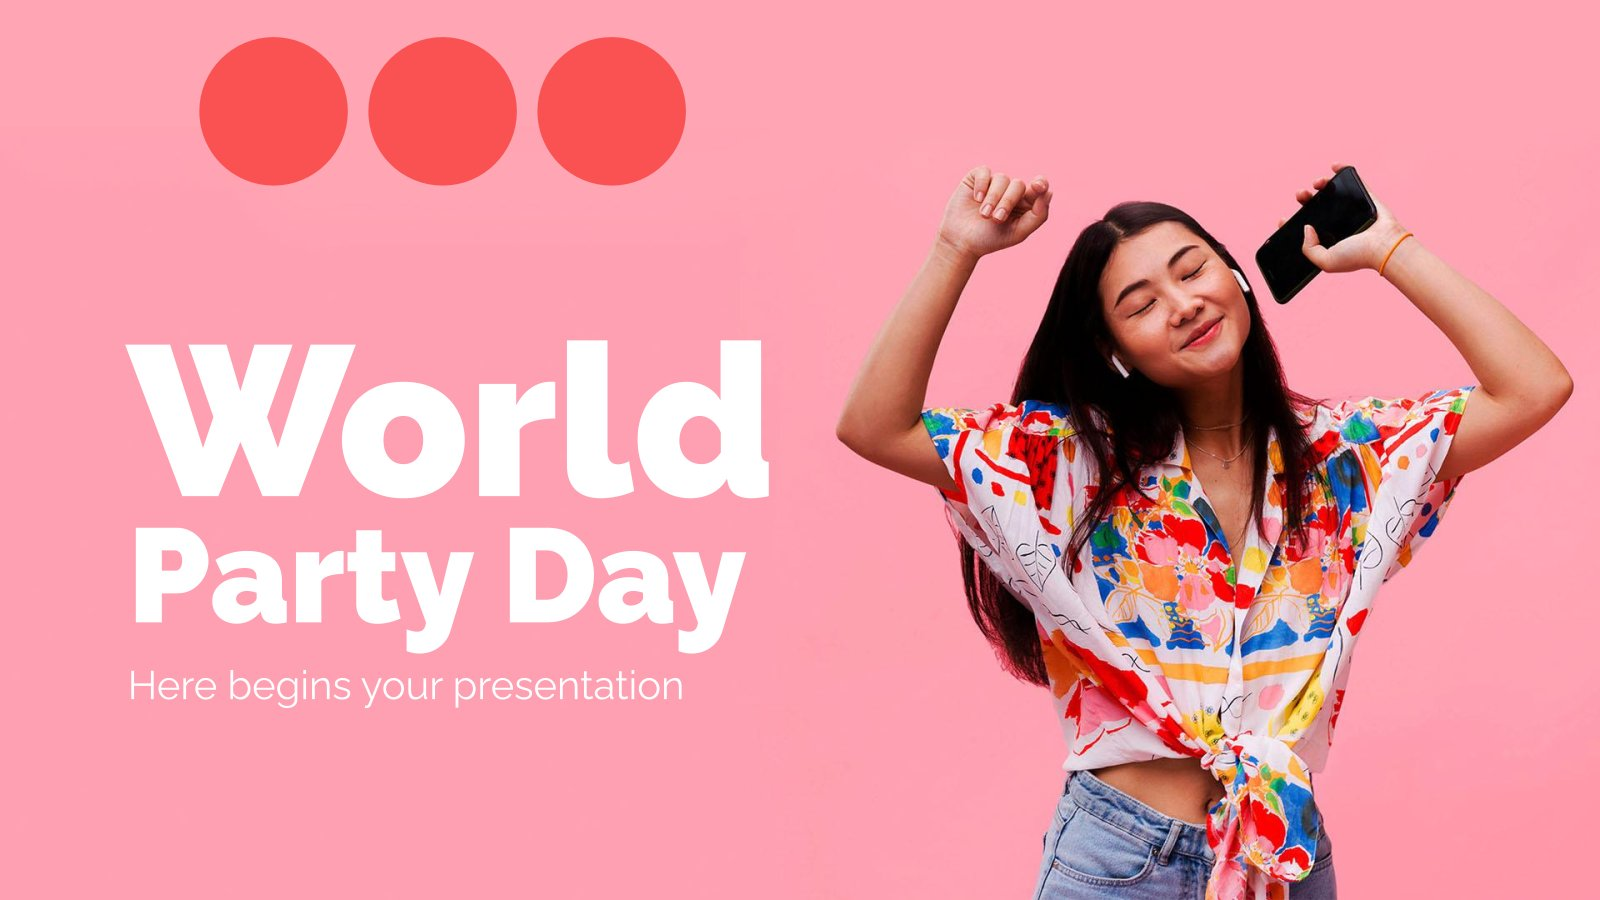 World Party Day presentation template